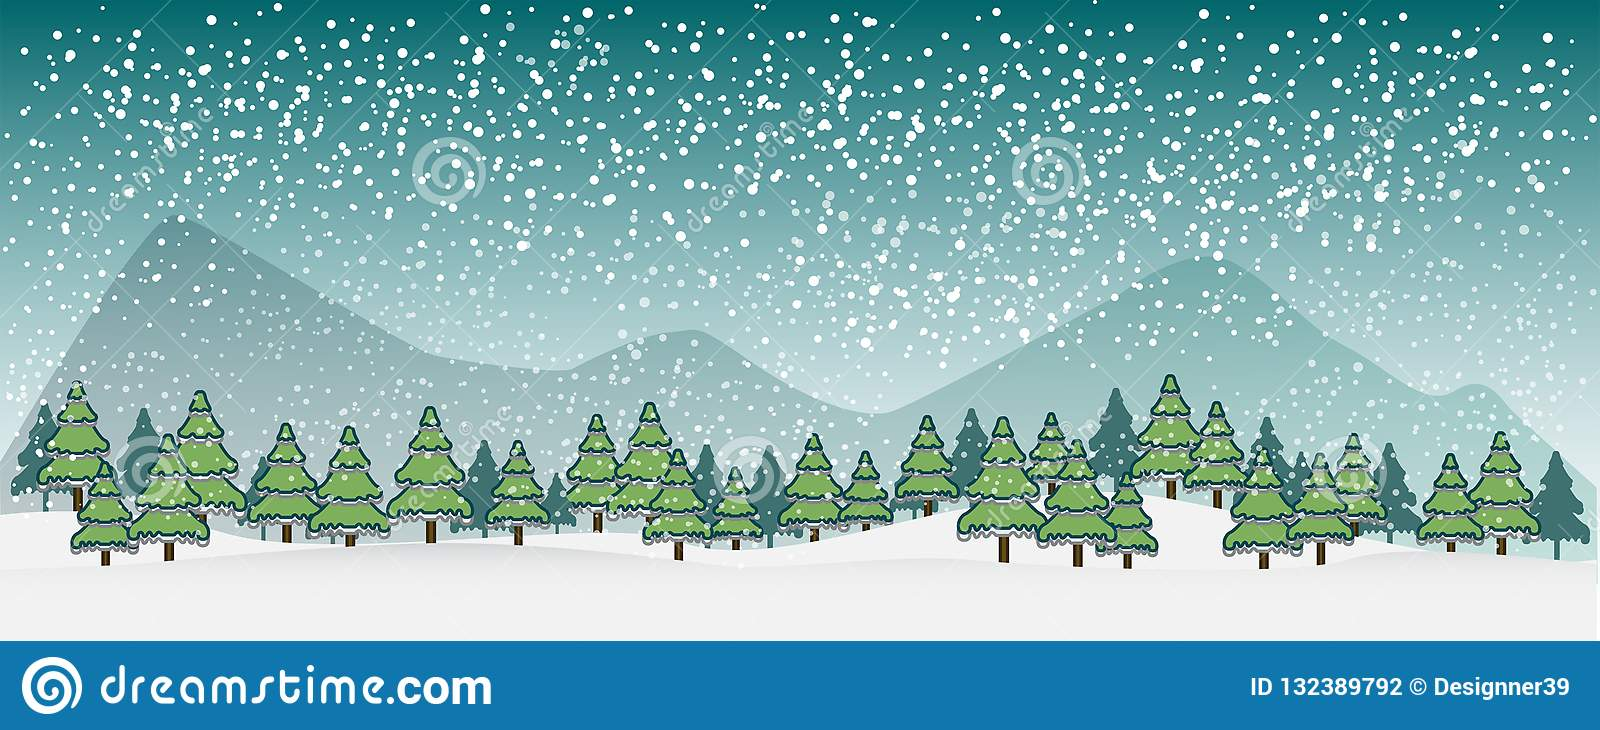 Winter vector landscape with silhouettes of trees and mountains.vector illustrator.